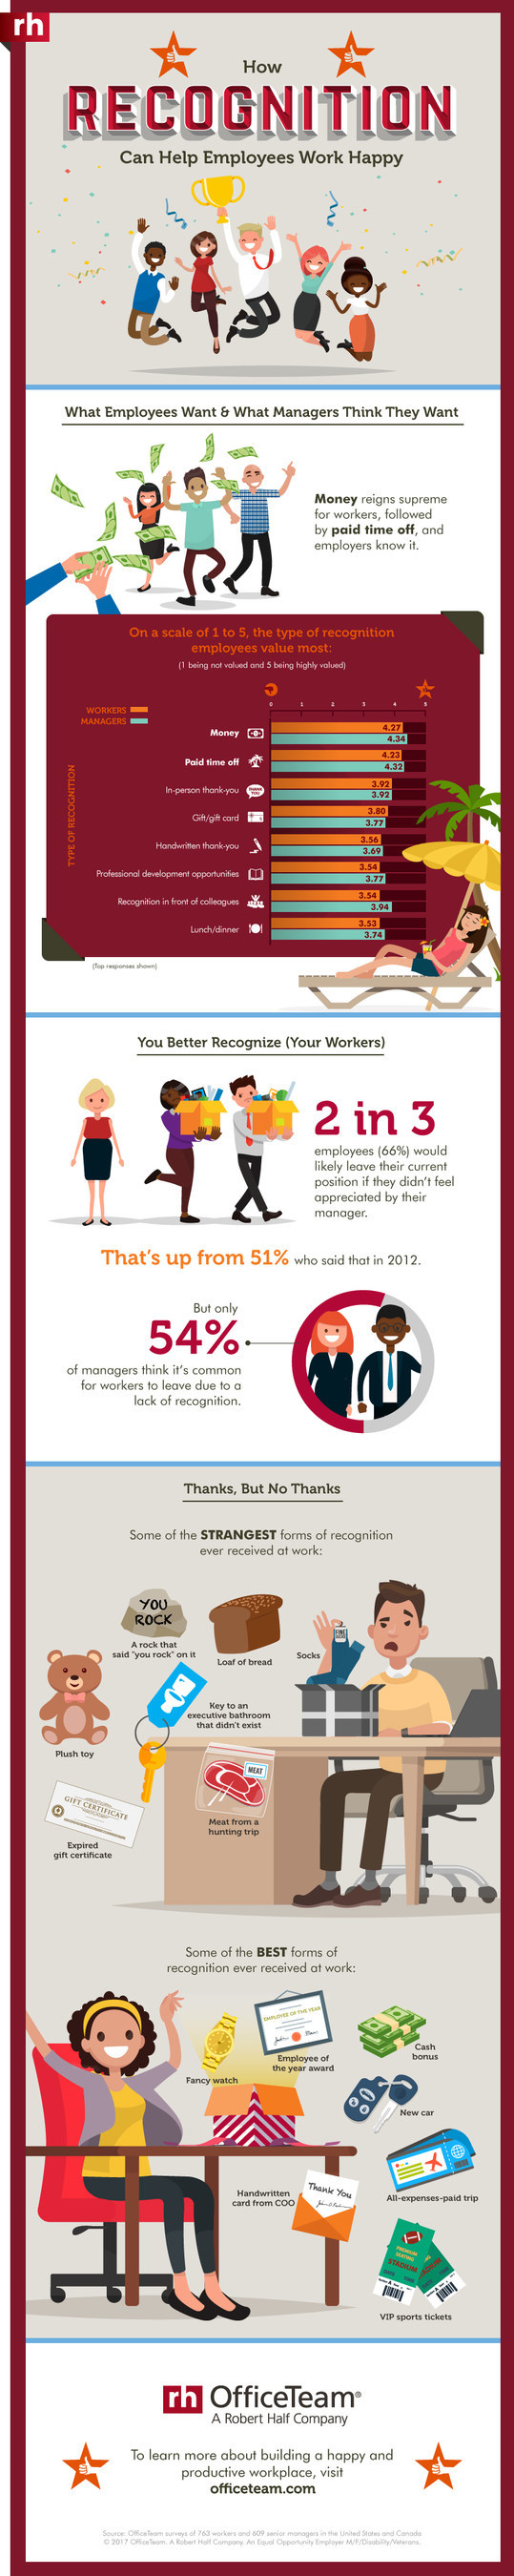 According to a new OfficeTeam survey, two-thirds (66%) of workers would leave their job if they didn't feel appreciated. That's up from 51% who responded that way in 2012. But just over half (54%) of senior managers believe it's common for staff to quit due to lack of recognition. Check out the infographic for additional stats.